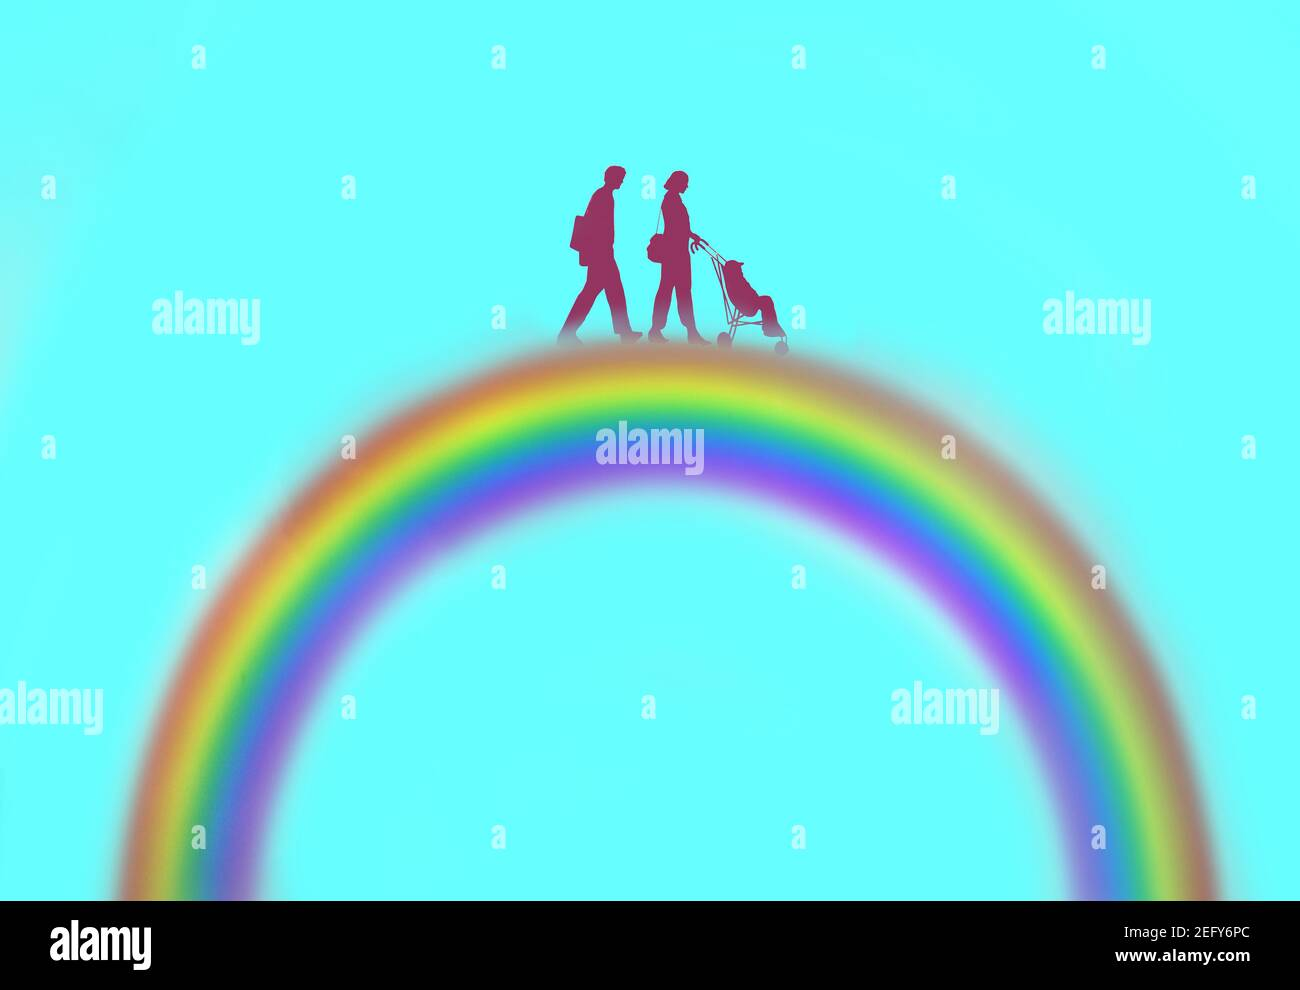 young hetrosexual couple on a rainbow pushing a child in a stroller Stock Photo